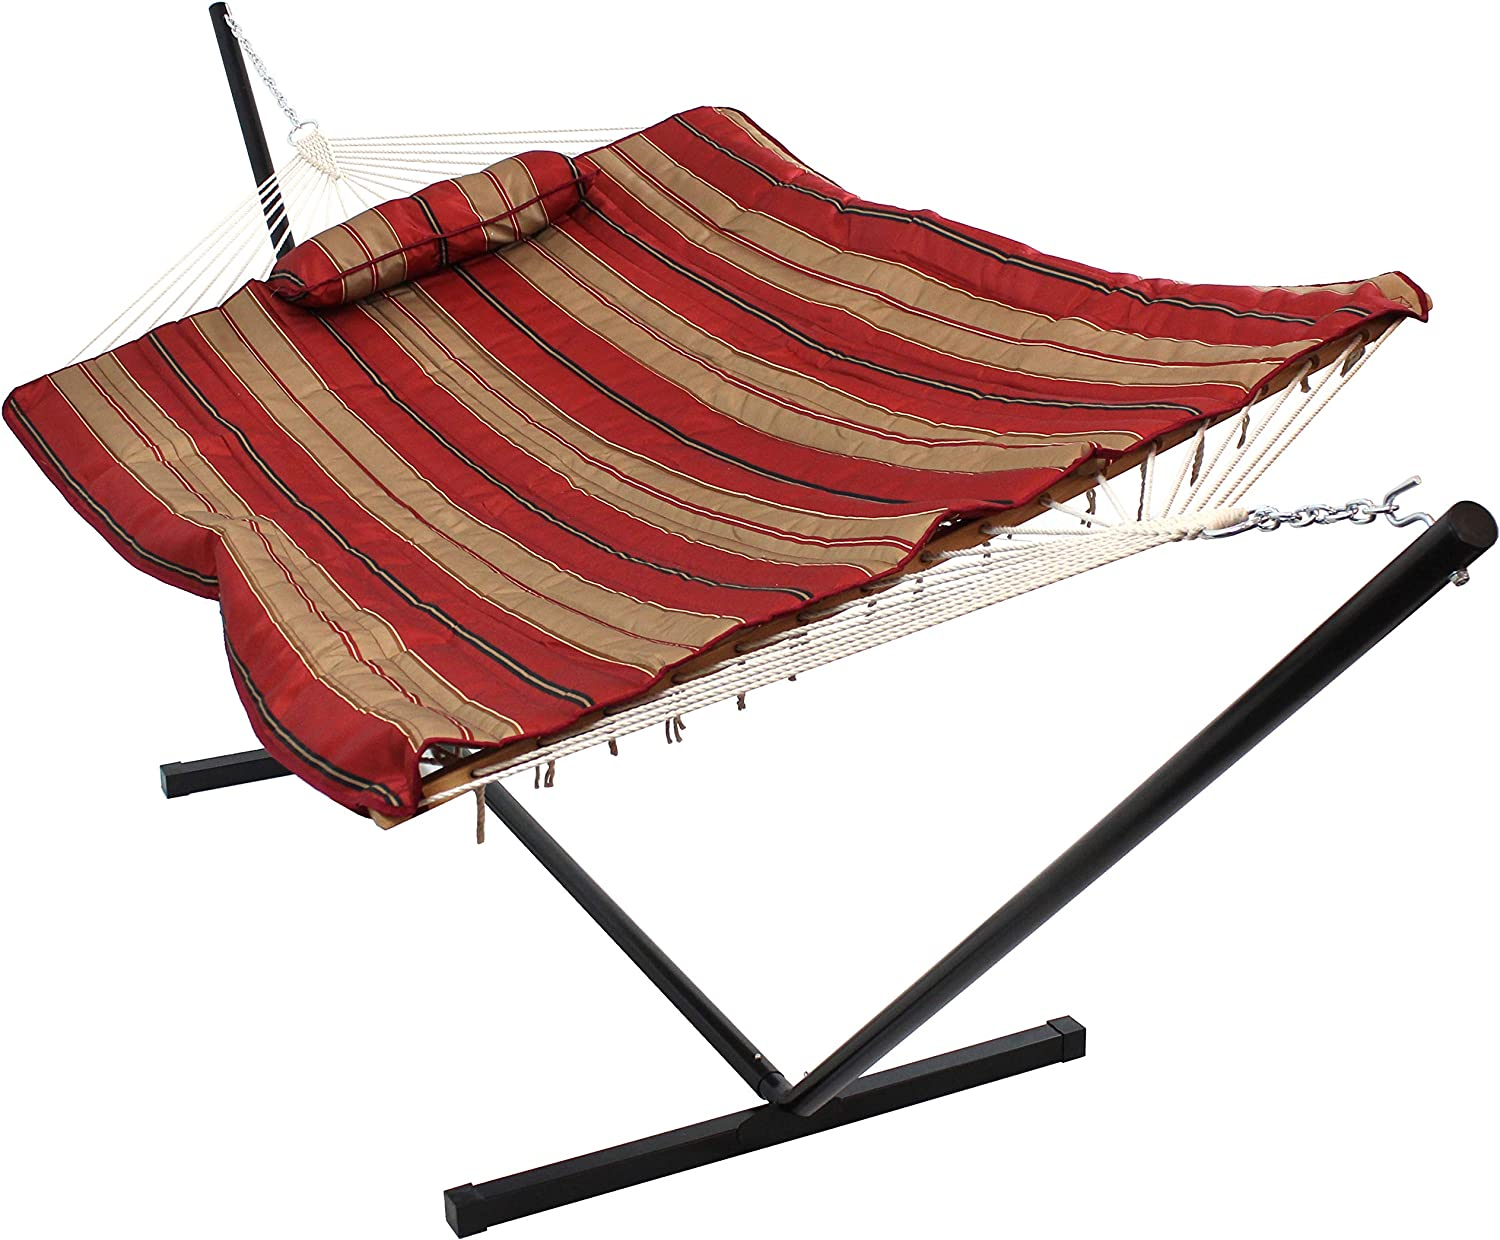 Sunnydaze Max 76% OFF Cotton Rope Freestanding Hammock with All items free shipping 12 Portable Foot